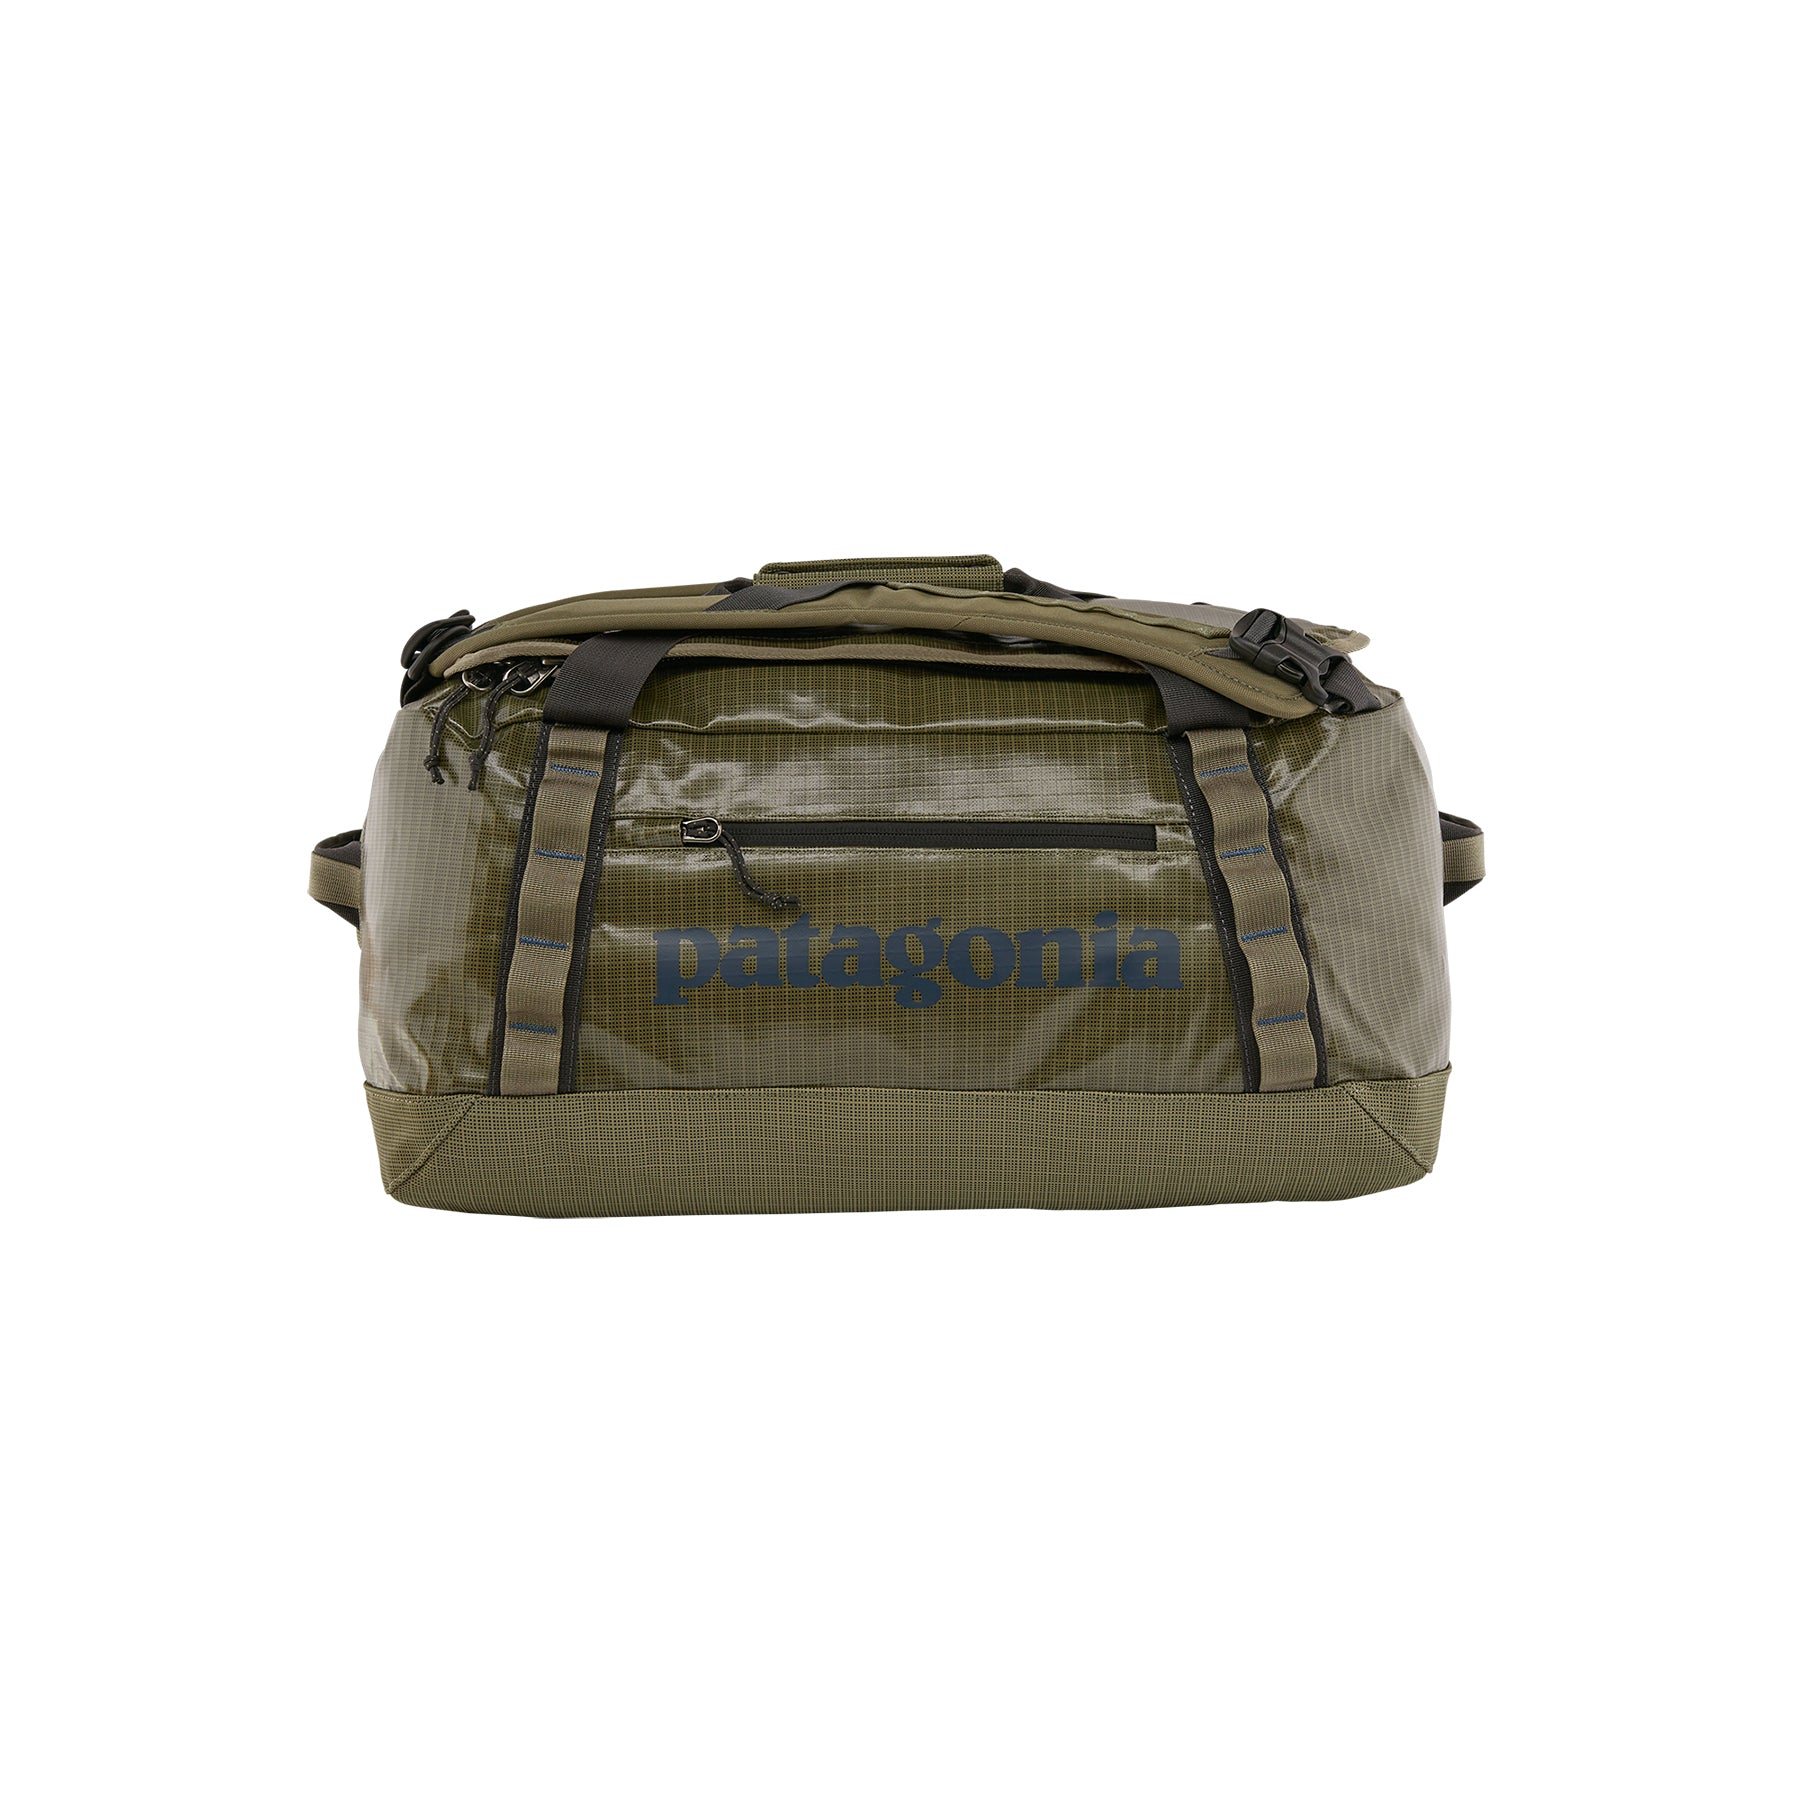 Patagonia Black Hole Duffel 40L Bag in Sage Khaki